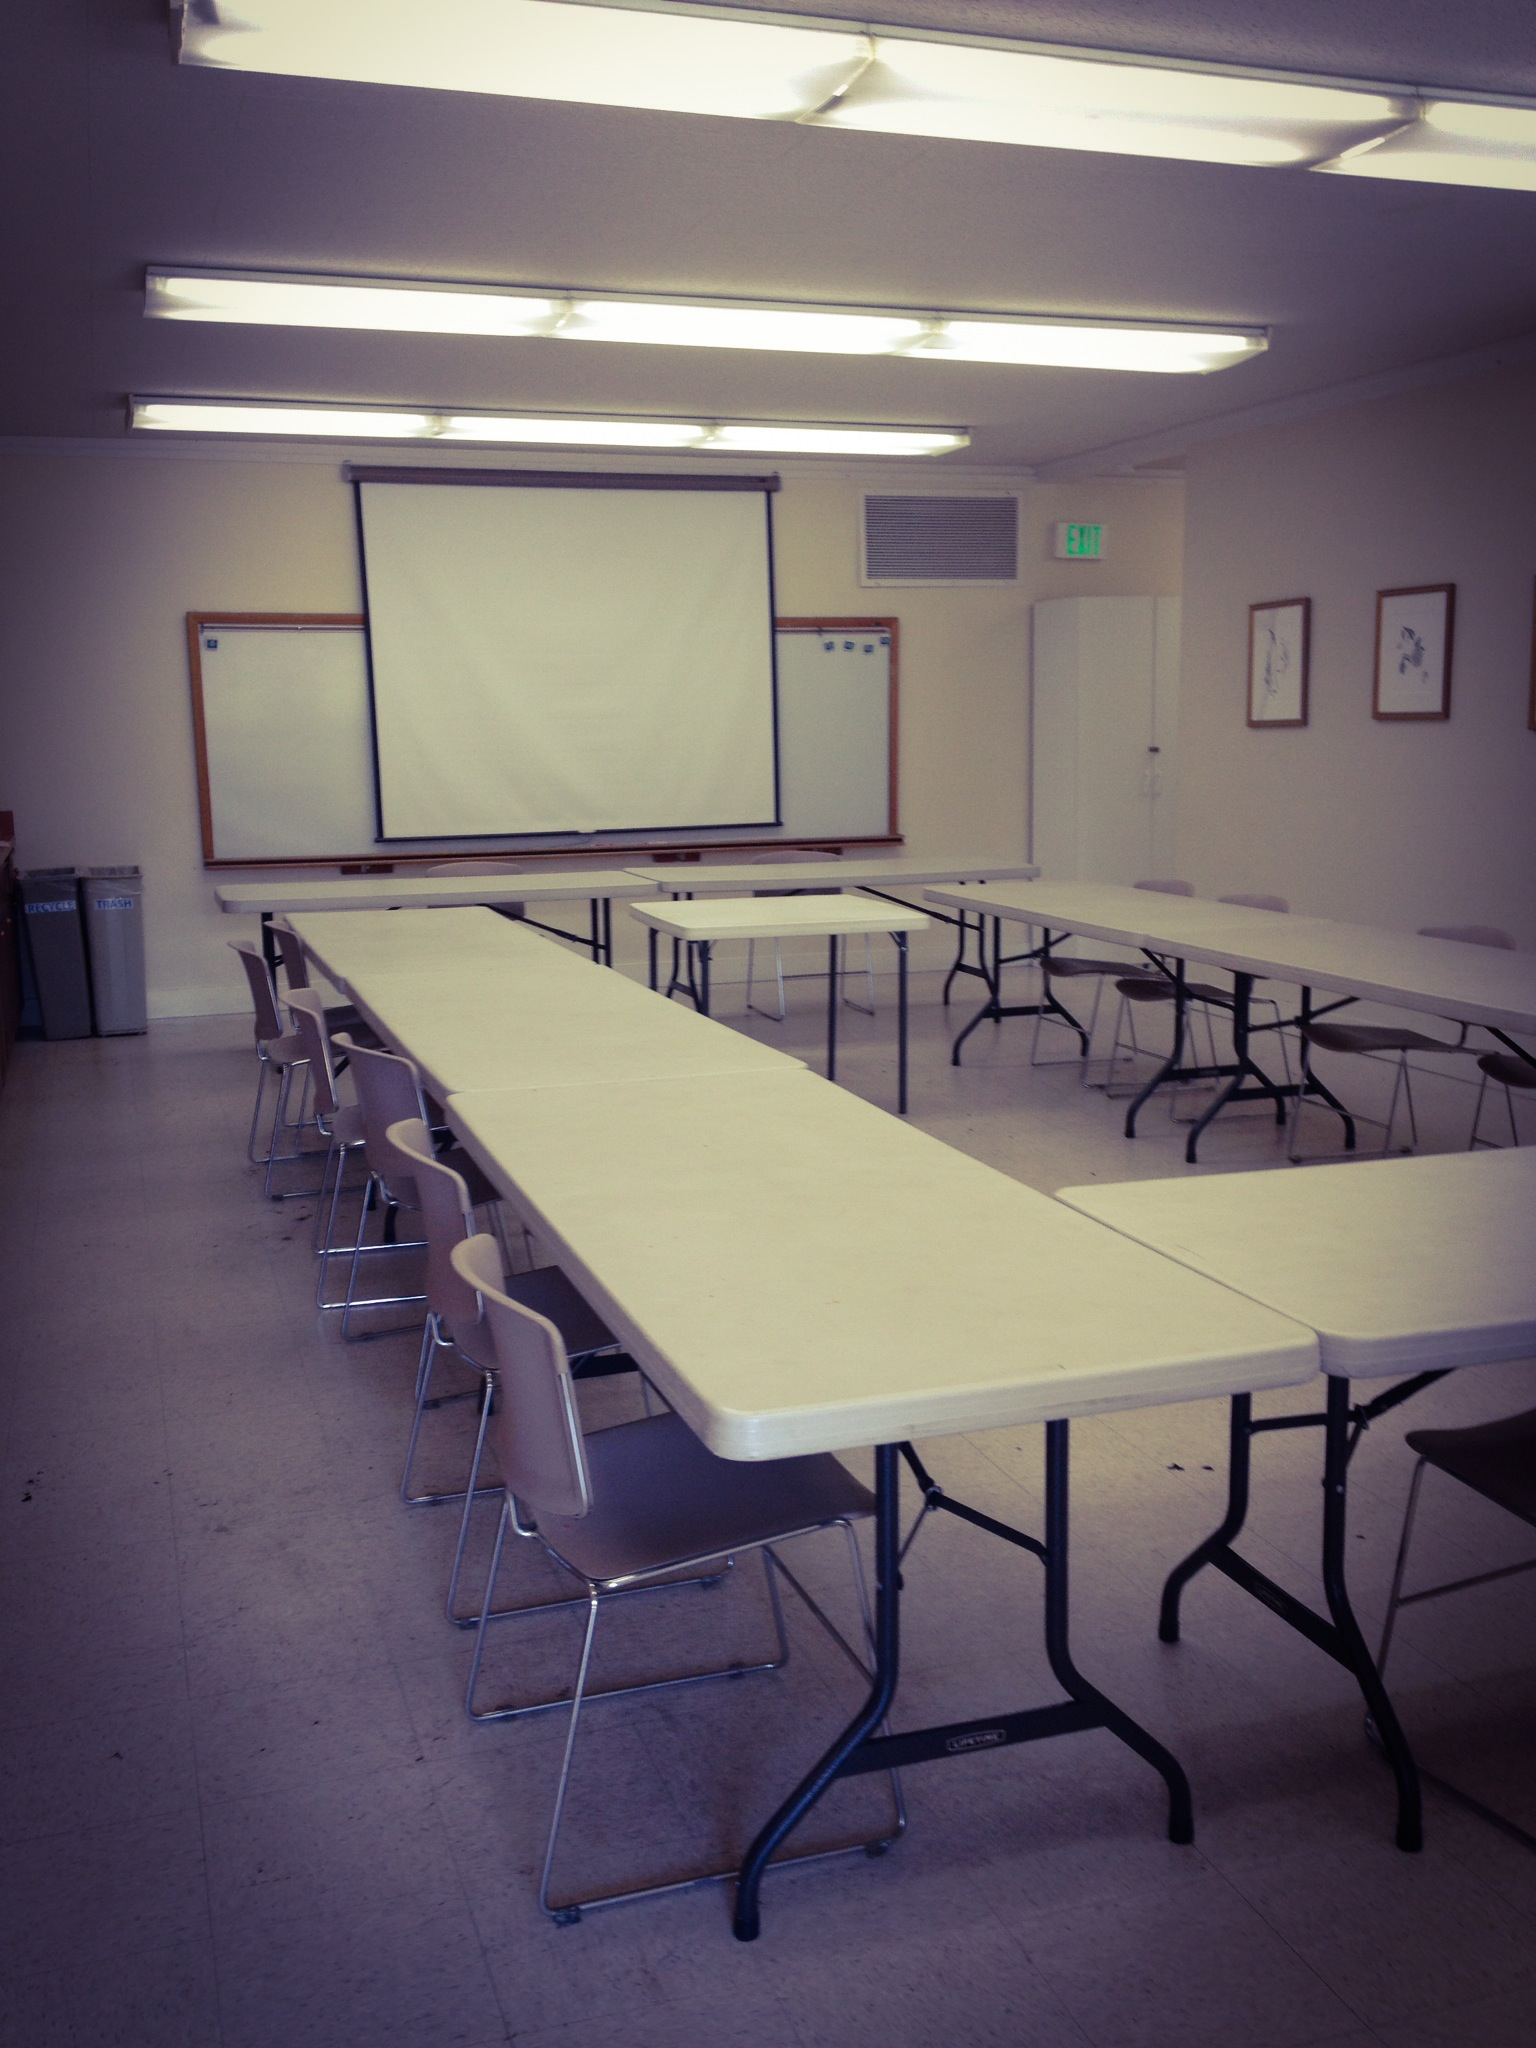 The Rotary Room can hold up to 30 people in a classroom setting.